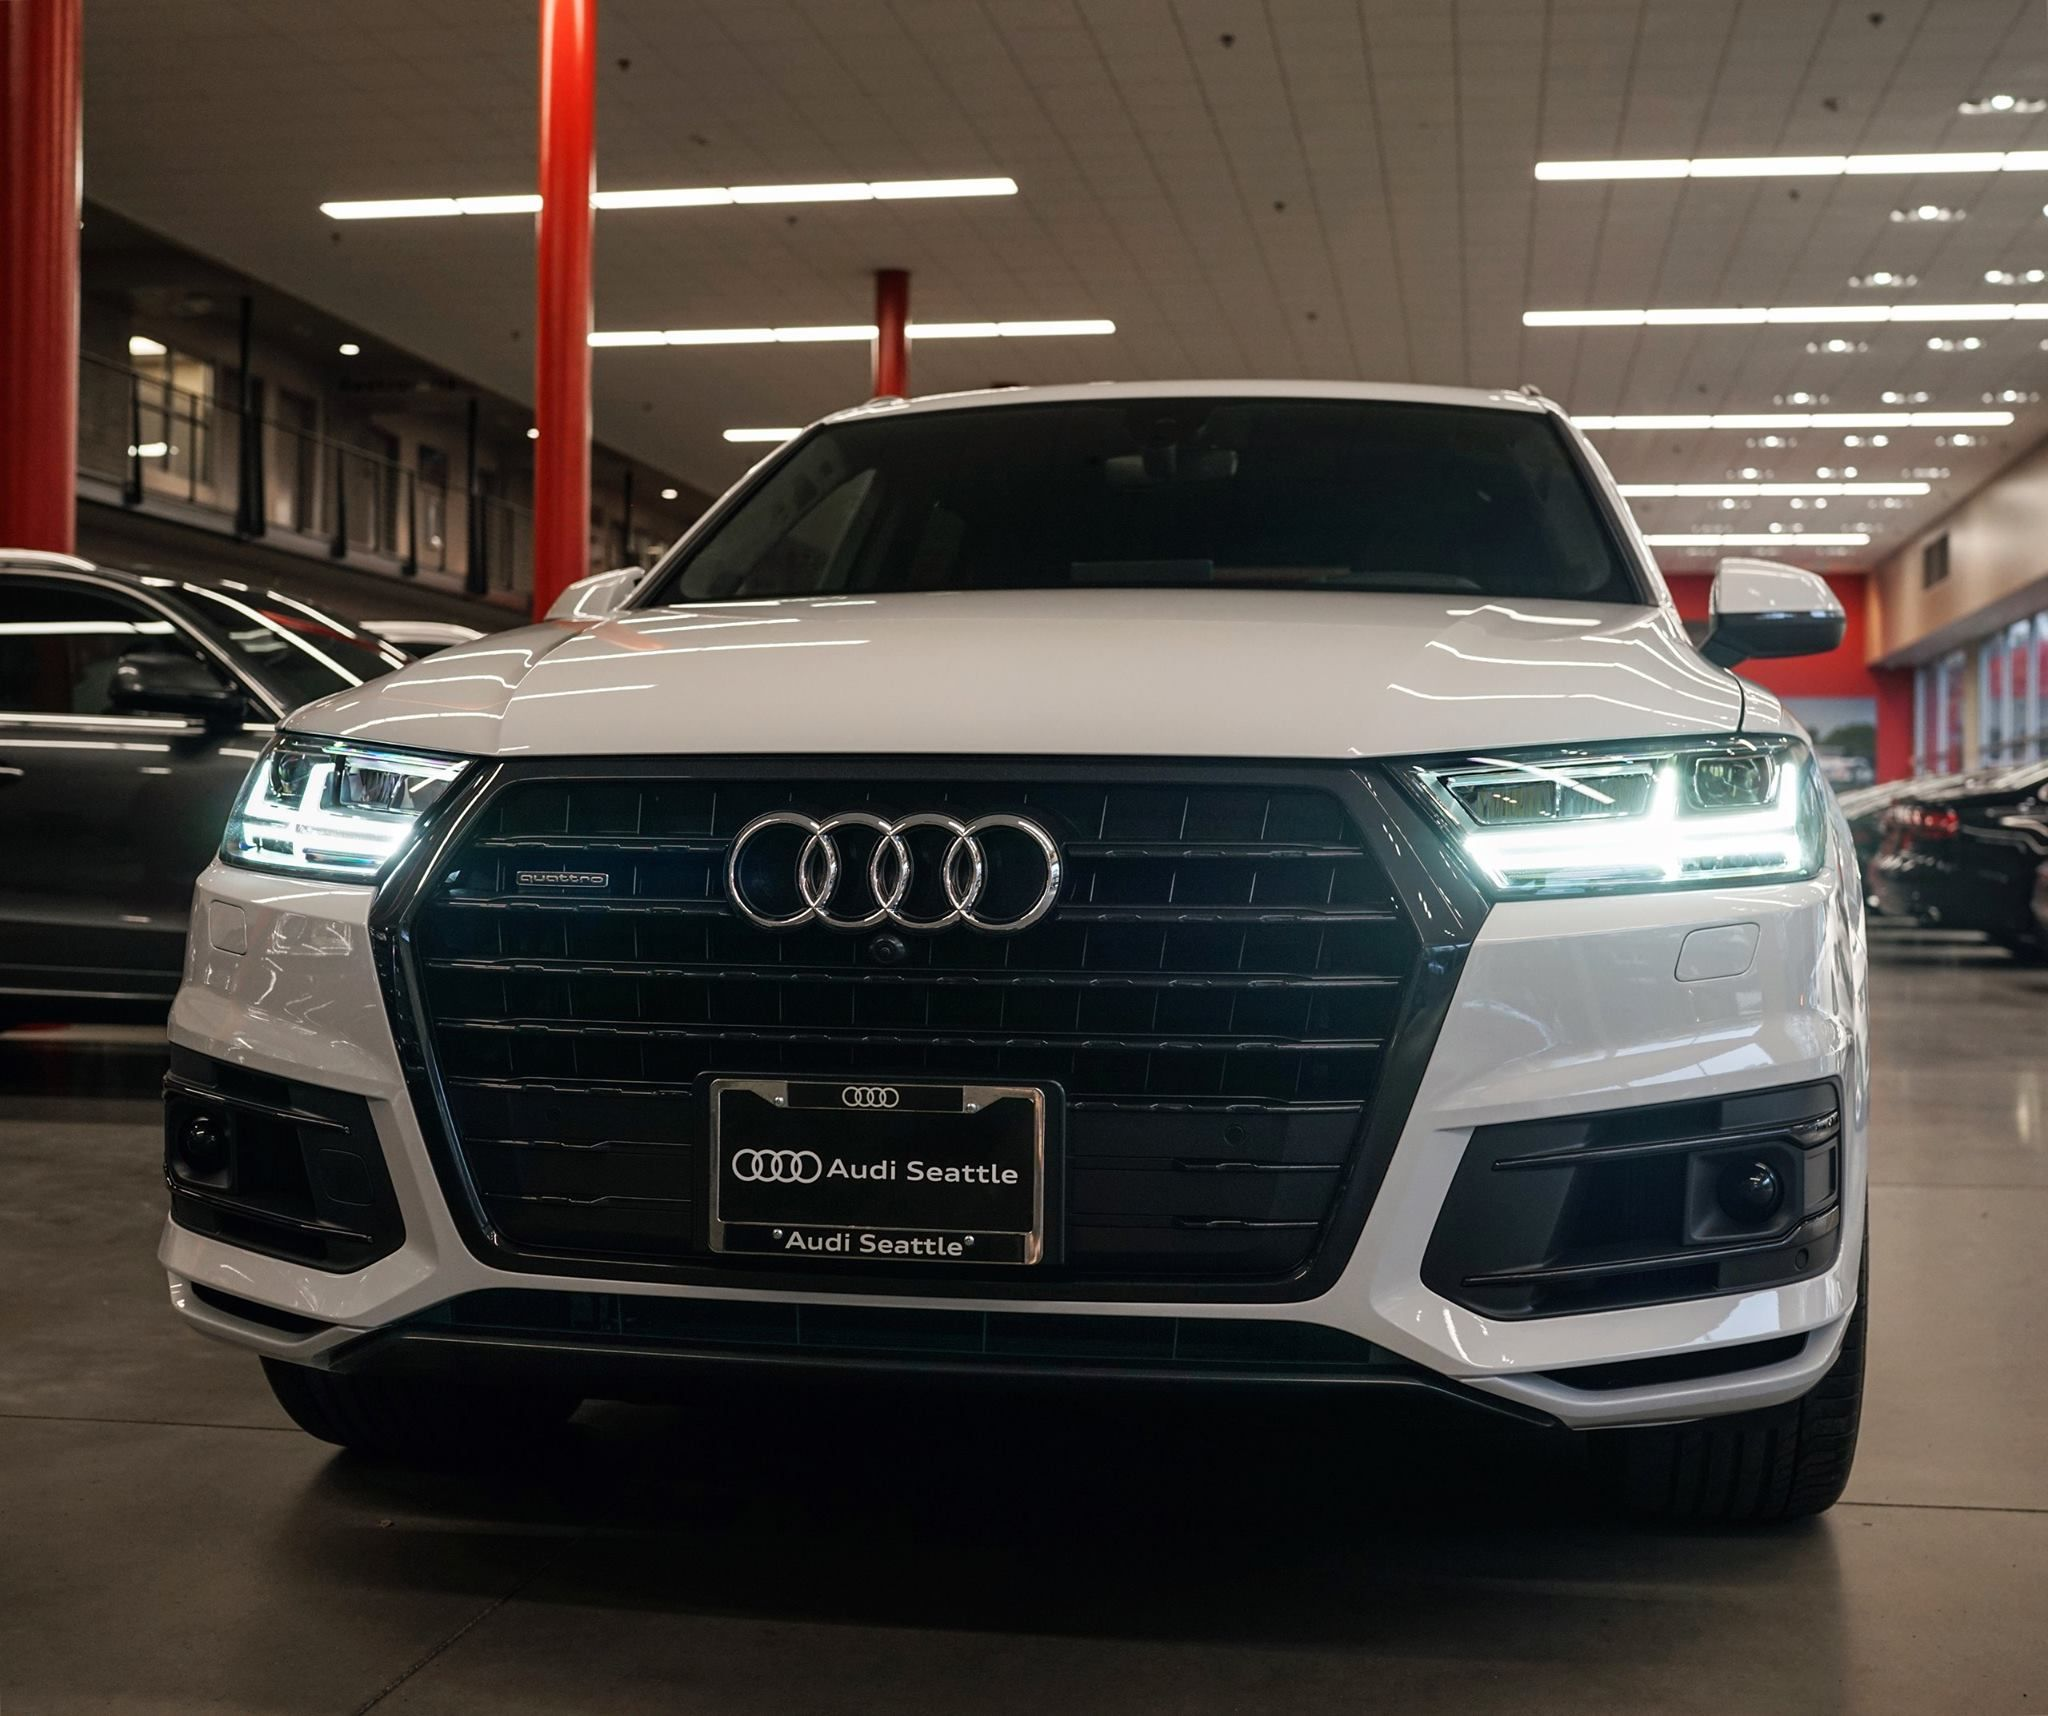 White 2017 Q7 In Black Optics Will Haul Your Little Squad Of Storm Troopers Anywhere Audiseattle Com Audi 2017 Dream Cars Audi Audi